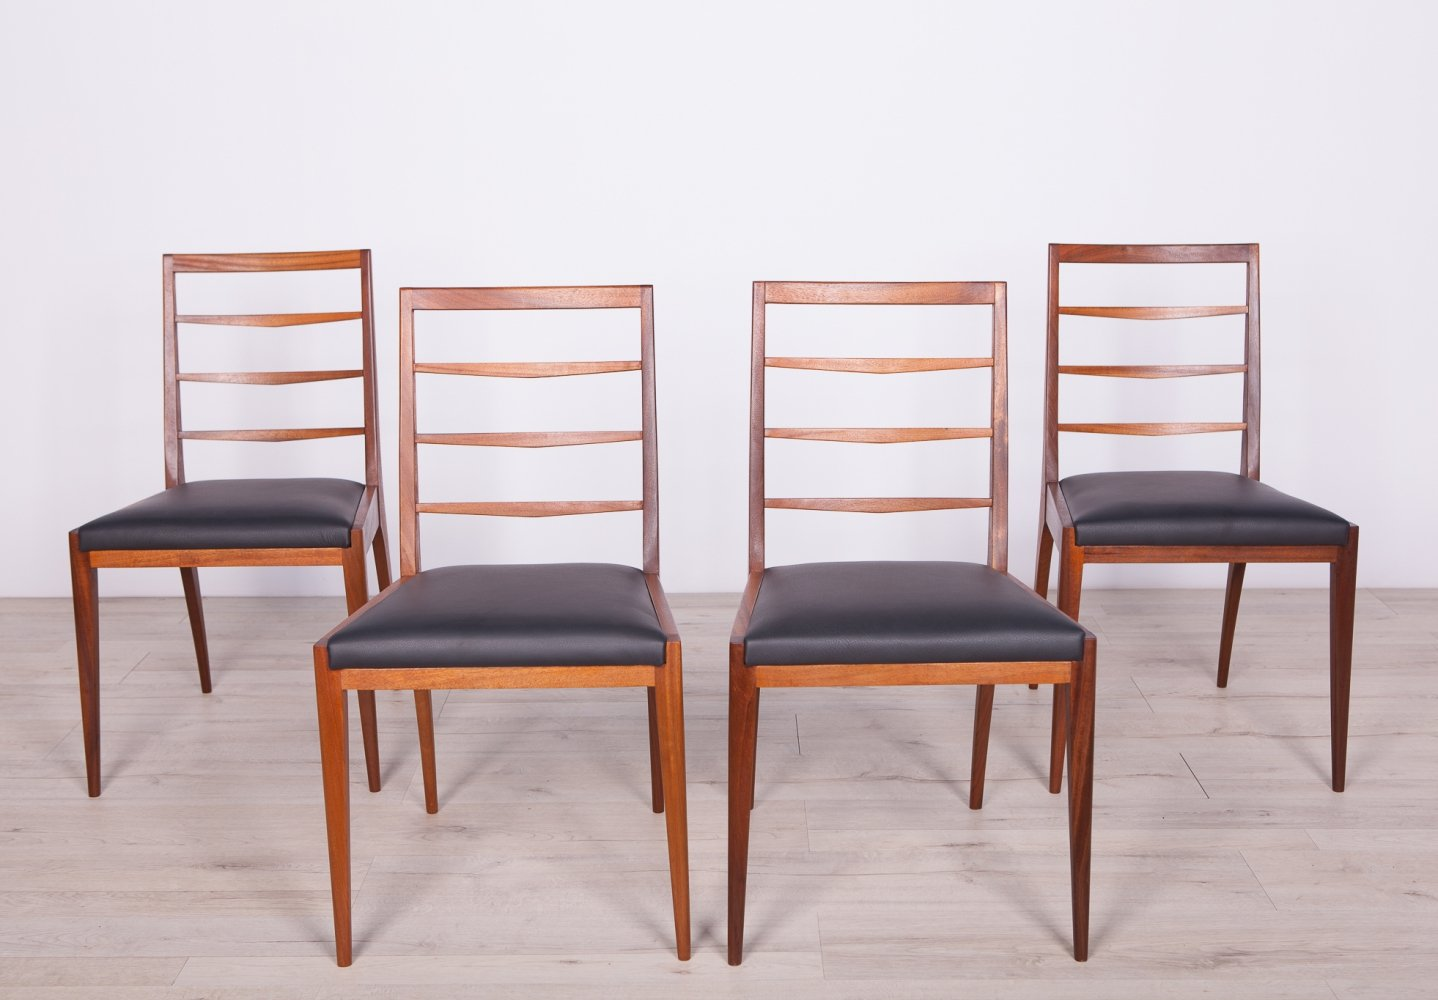 Set of 4 Mid Century Teak Dining Chairs from McIntosh, 1960s